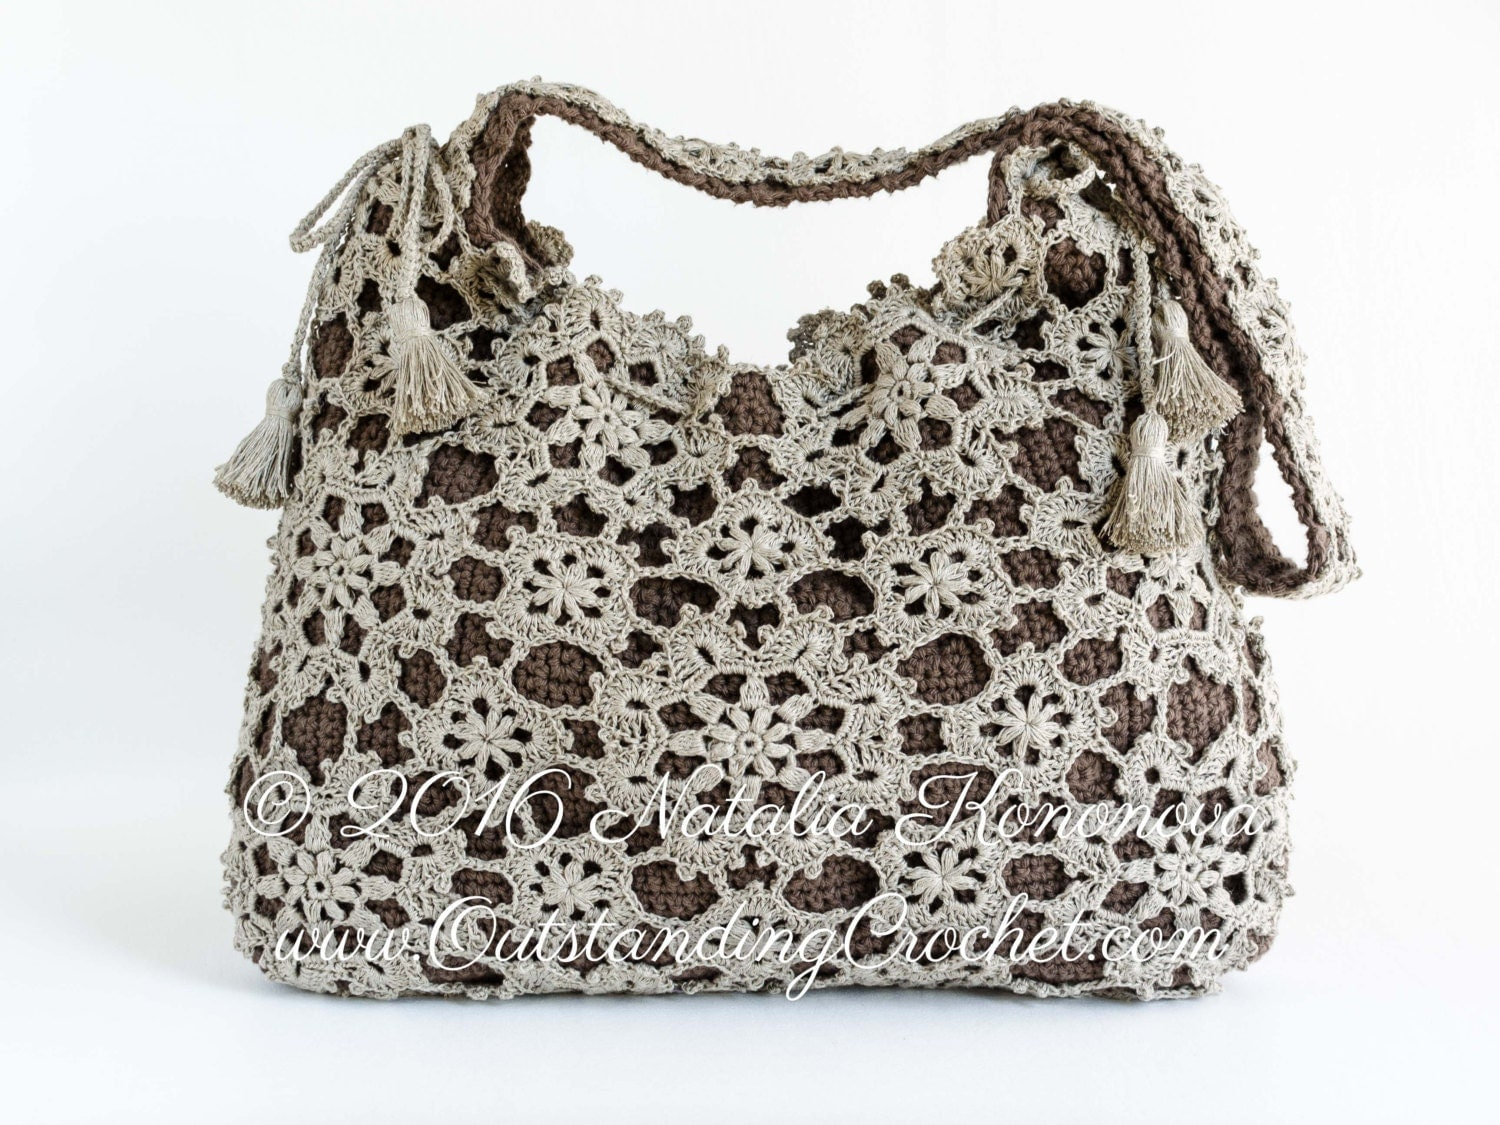 Crochet Crossbody Bag Pattern : ... Evening Bags Crossbody Bags Hobo Bags Shoulder Bags Top Handle Bags